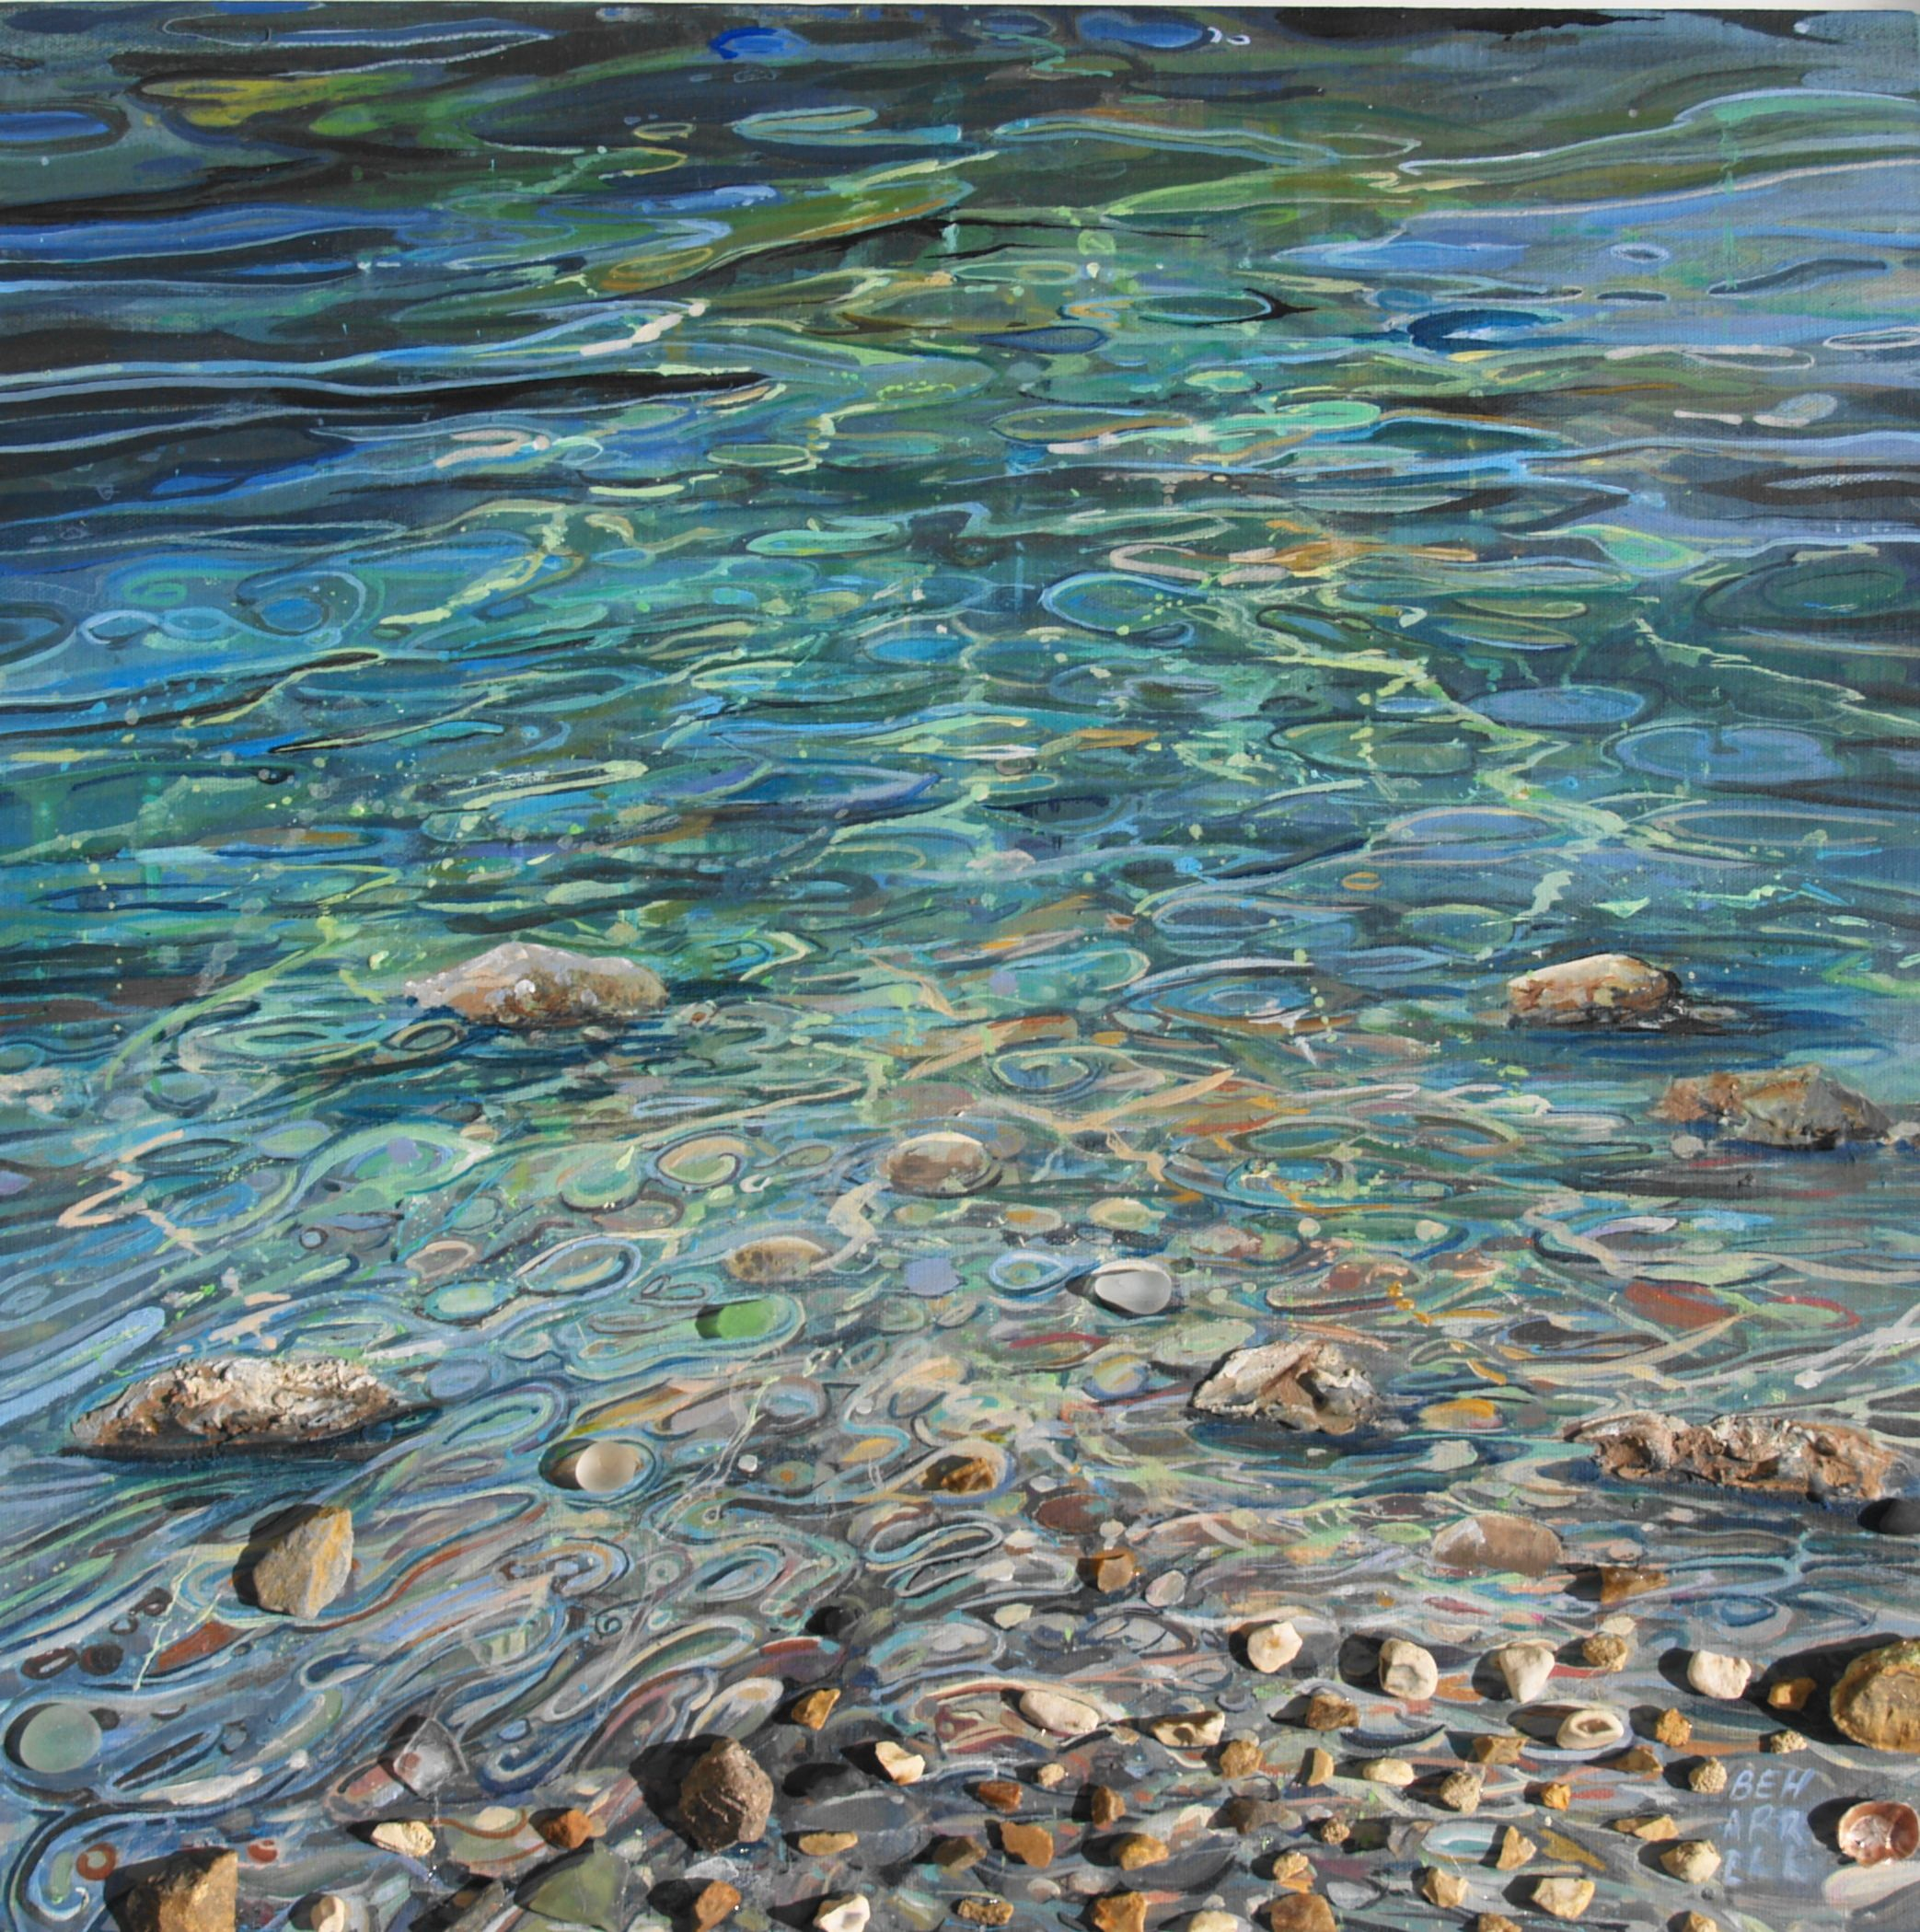 Ripples in the water - Cornish Art Gallery / Sophi ...